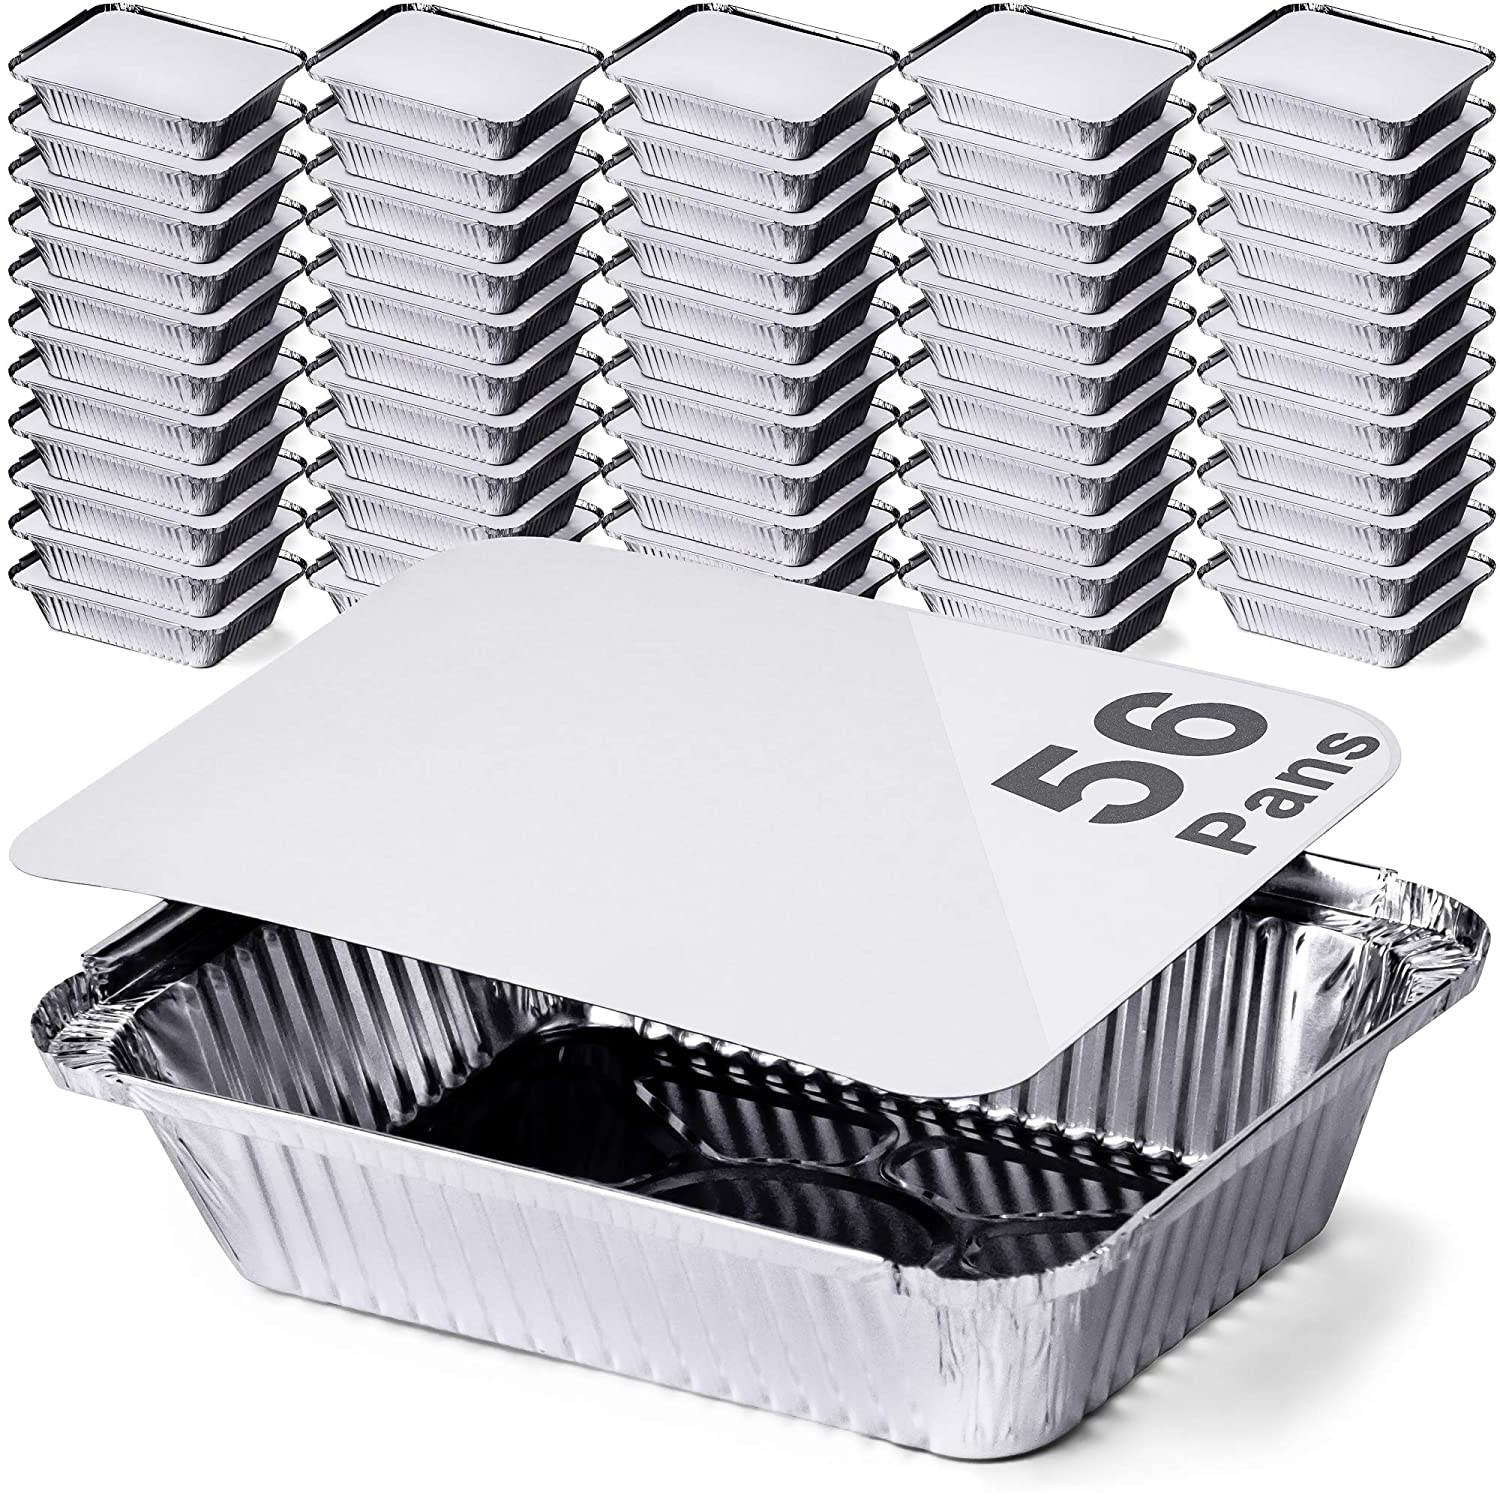 DecorRack 56 Aluminum Pan Disposable with Flat Board Lid, 2.25 Lb Heavy Duty Rectangular Tin Foil Pans, Perfect for Reheating, Baking, Roasting, Meal Prep, to-Go Containers (56 Pack)